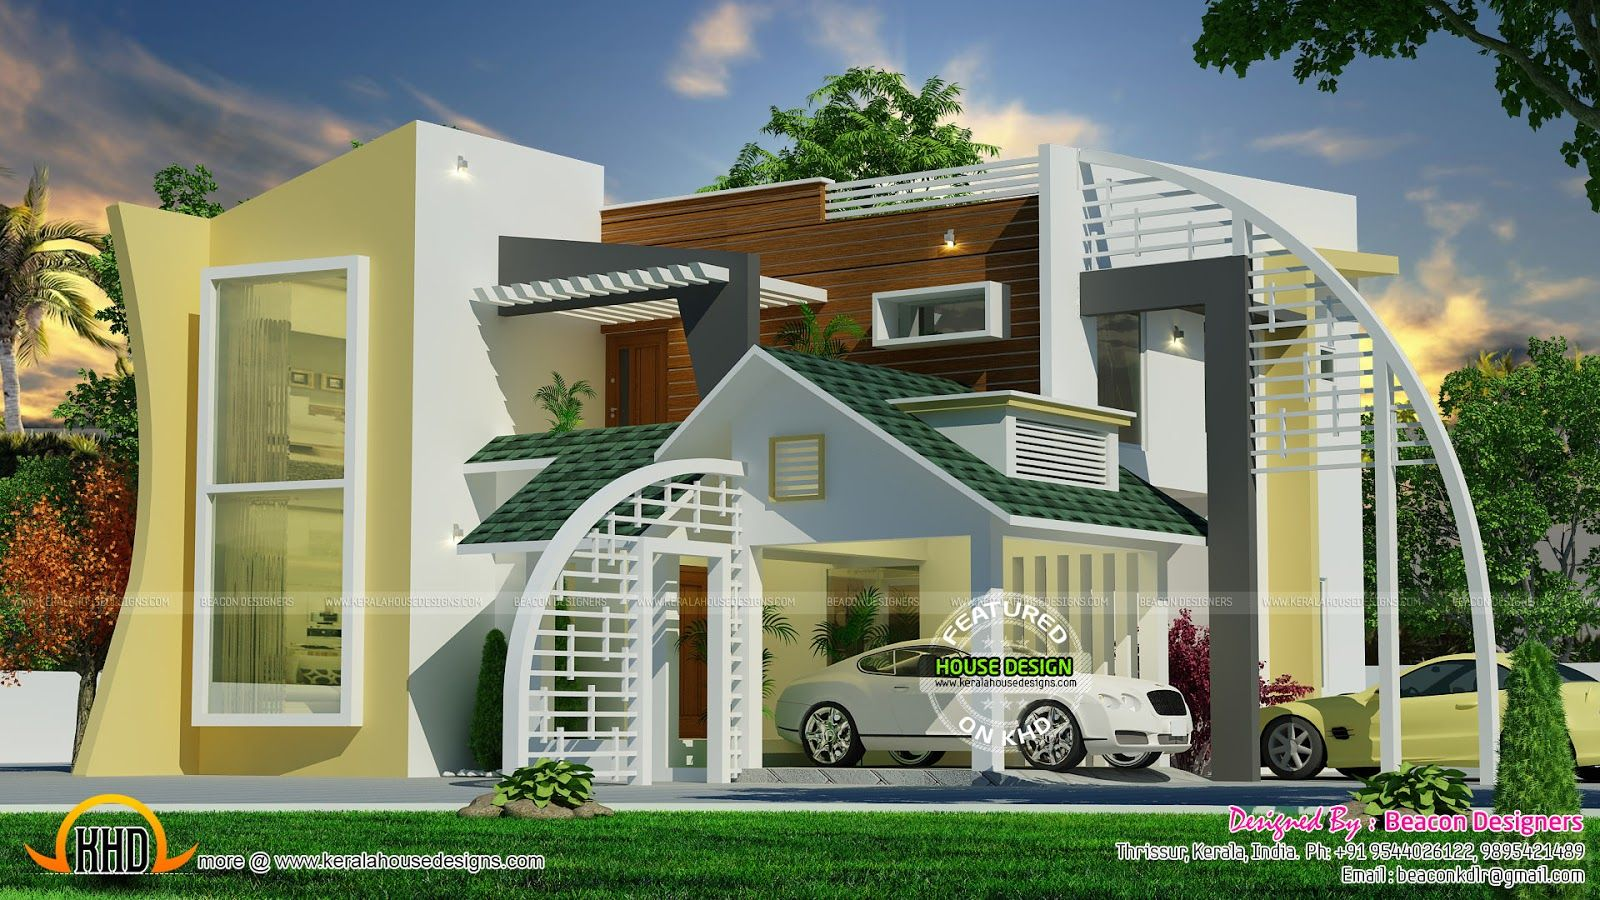 Simple modern house design moderncontemporaryhouse storey two plans also stylish for your living rh pinterest